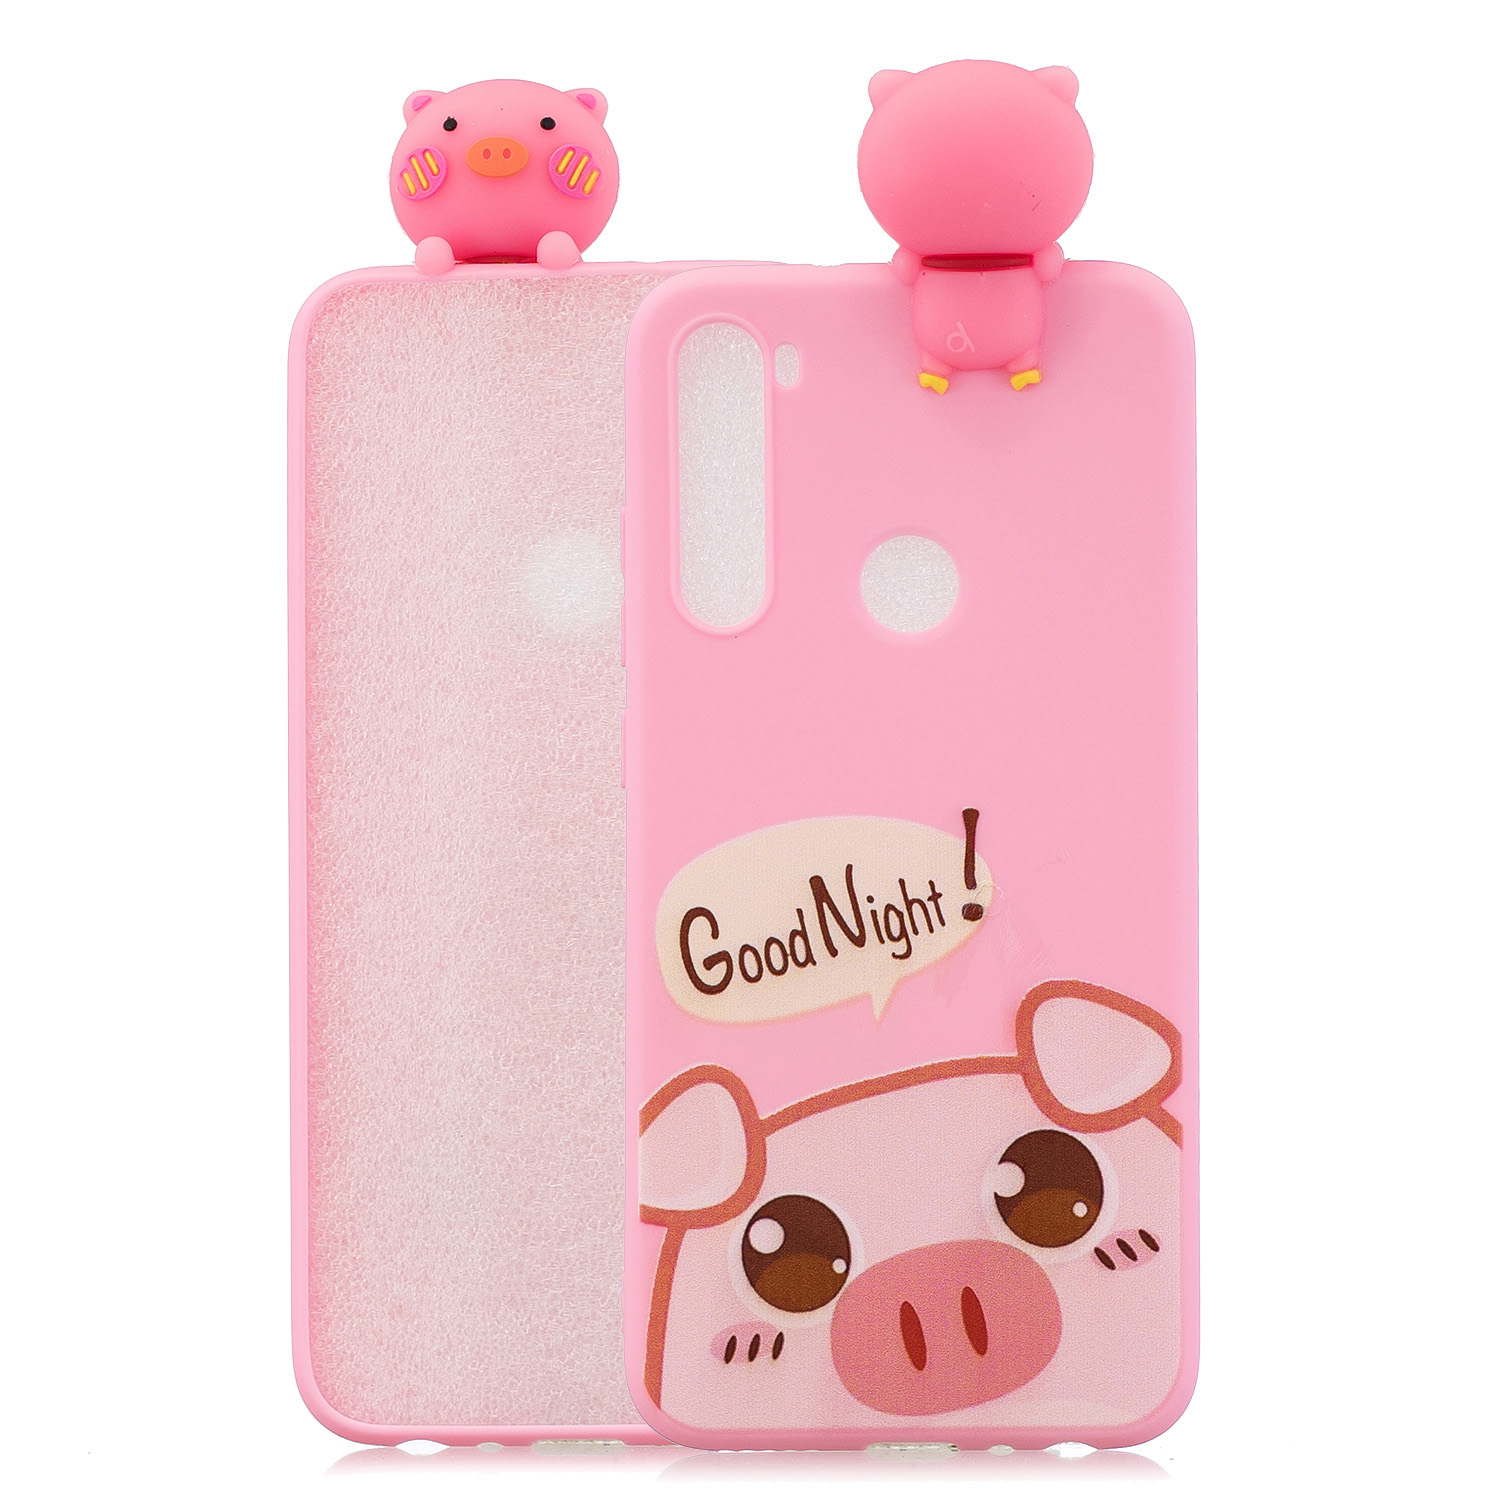 For Redmi 8/8A/5/Note 8T Mobile Phone Case Cute Cellphone Shell Soft TPU Cover with Cartoon Pig Duck Bear Kitten Lovely Pattern Rose